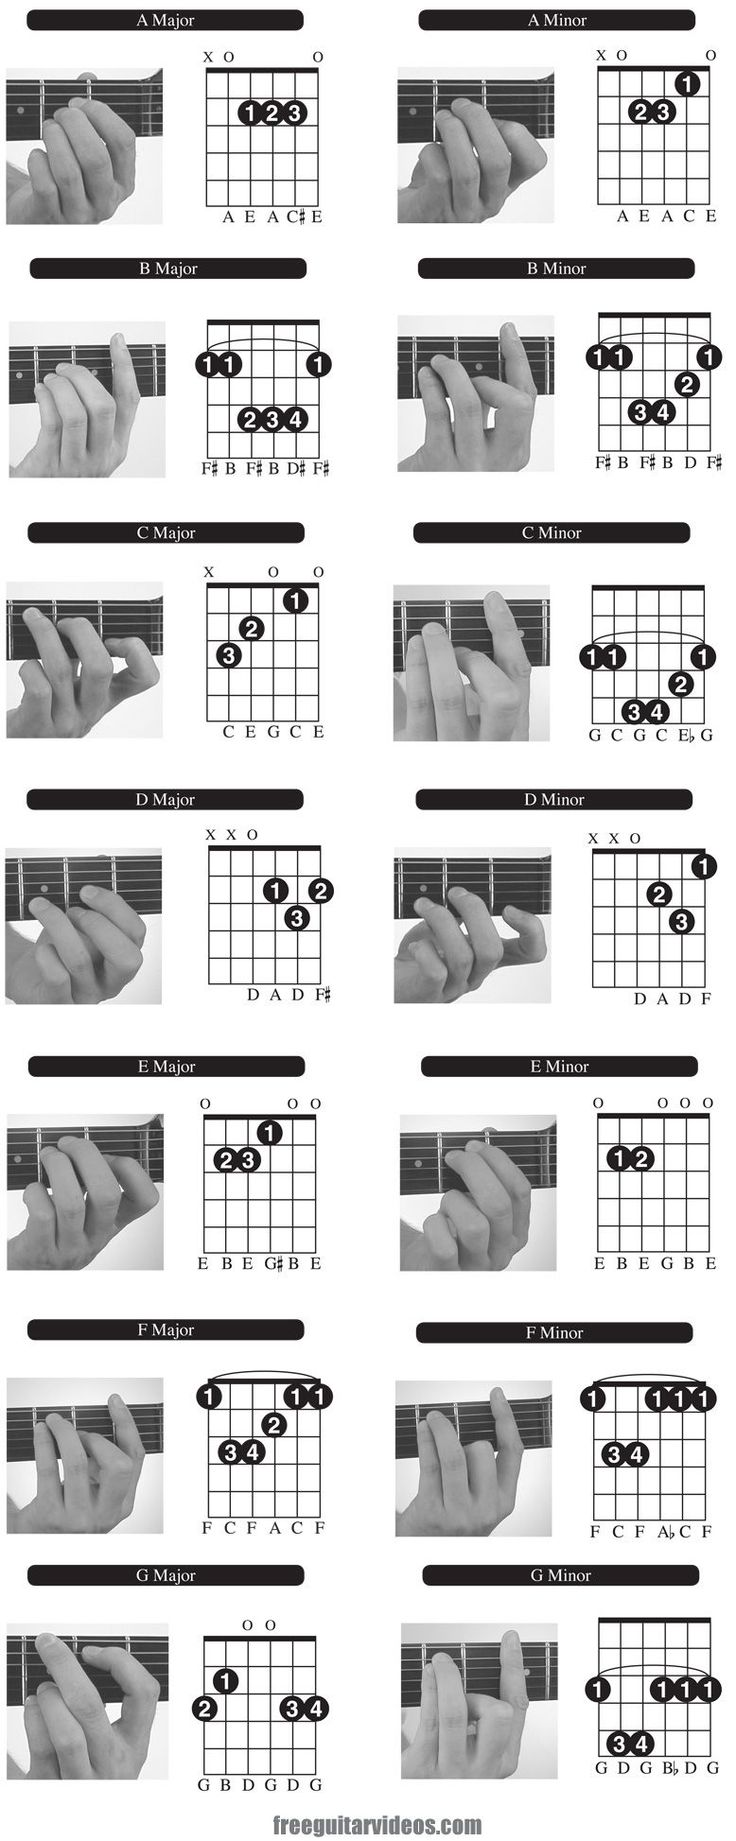 Learn killer riffs! Master chords and scales! Check out this great guitar site - http://guitar-cxq26g74.popularreviewsonline.com